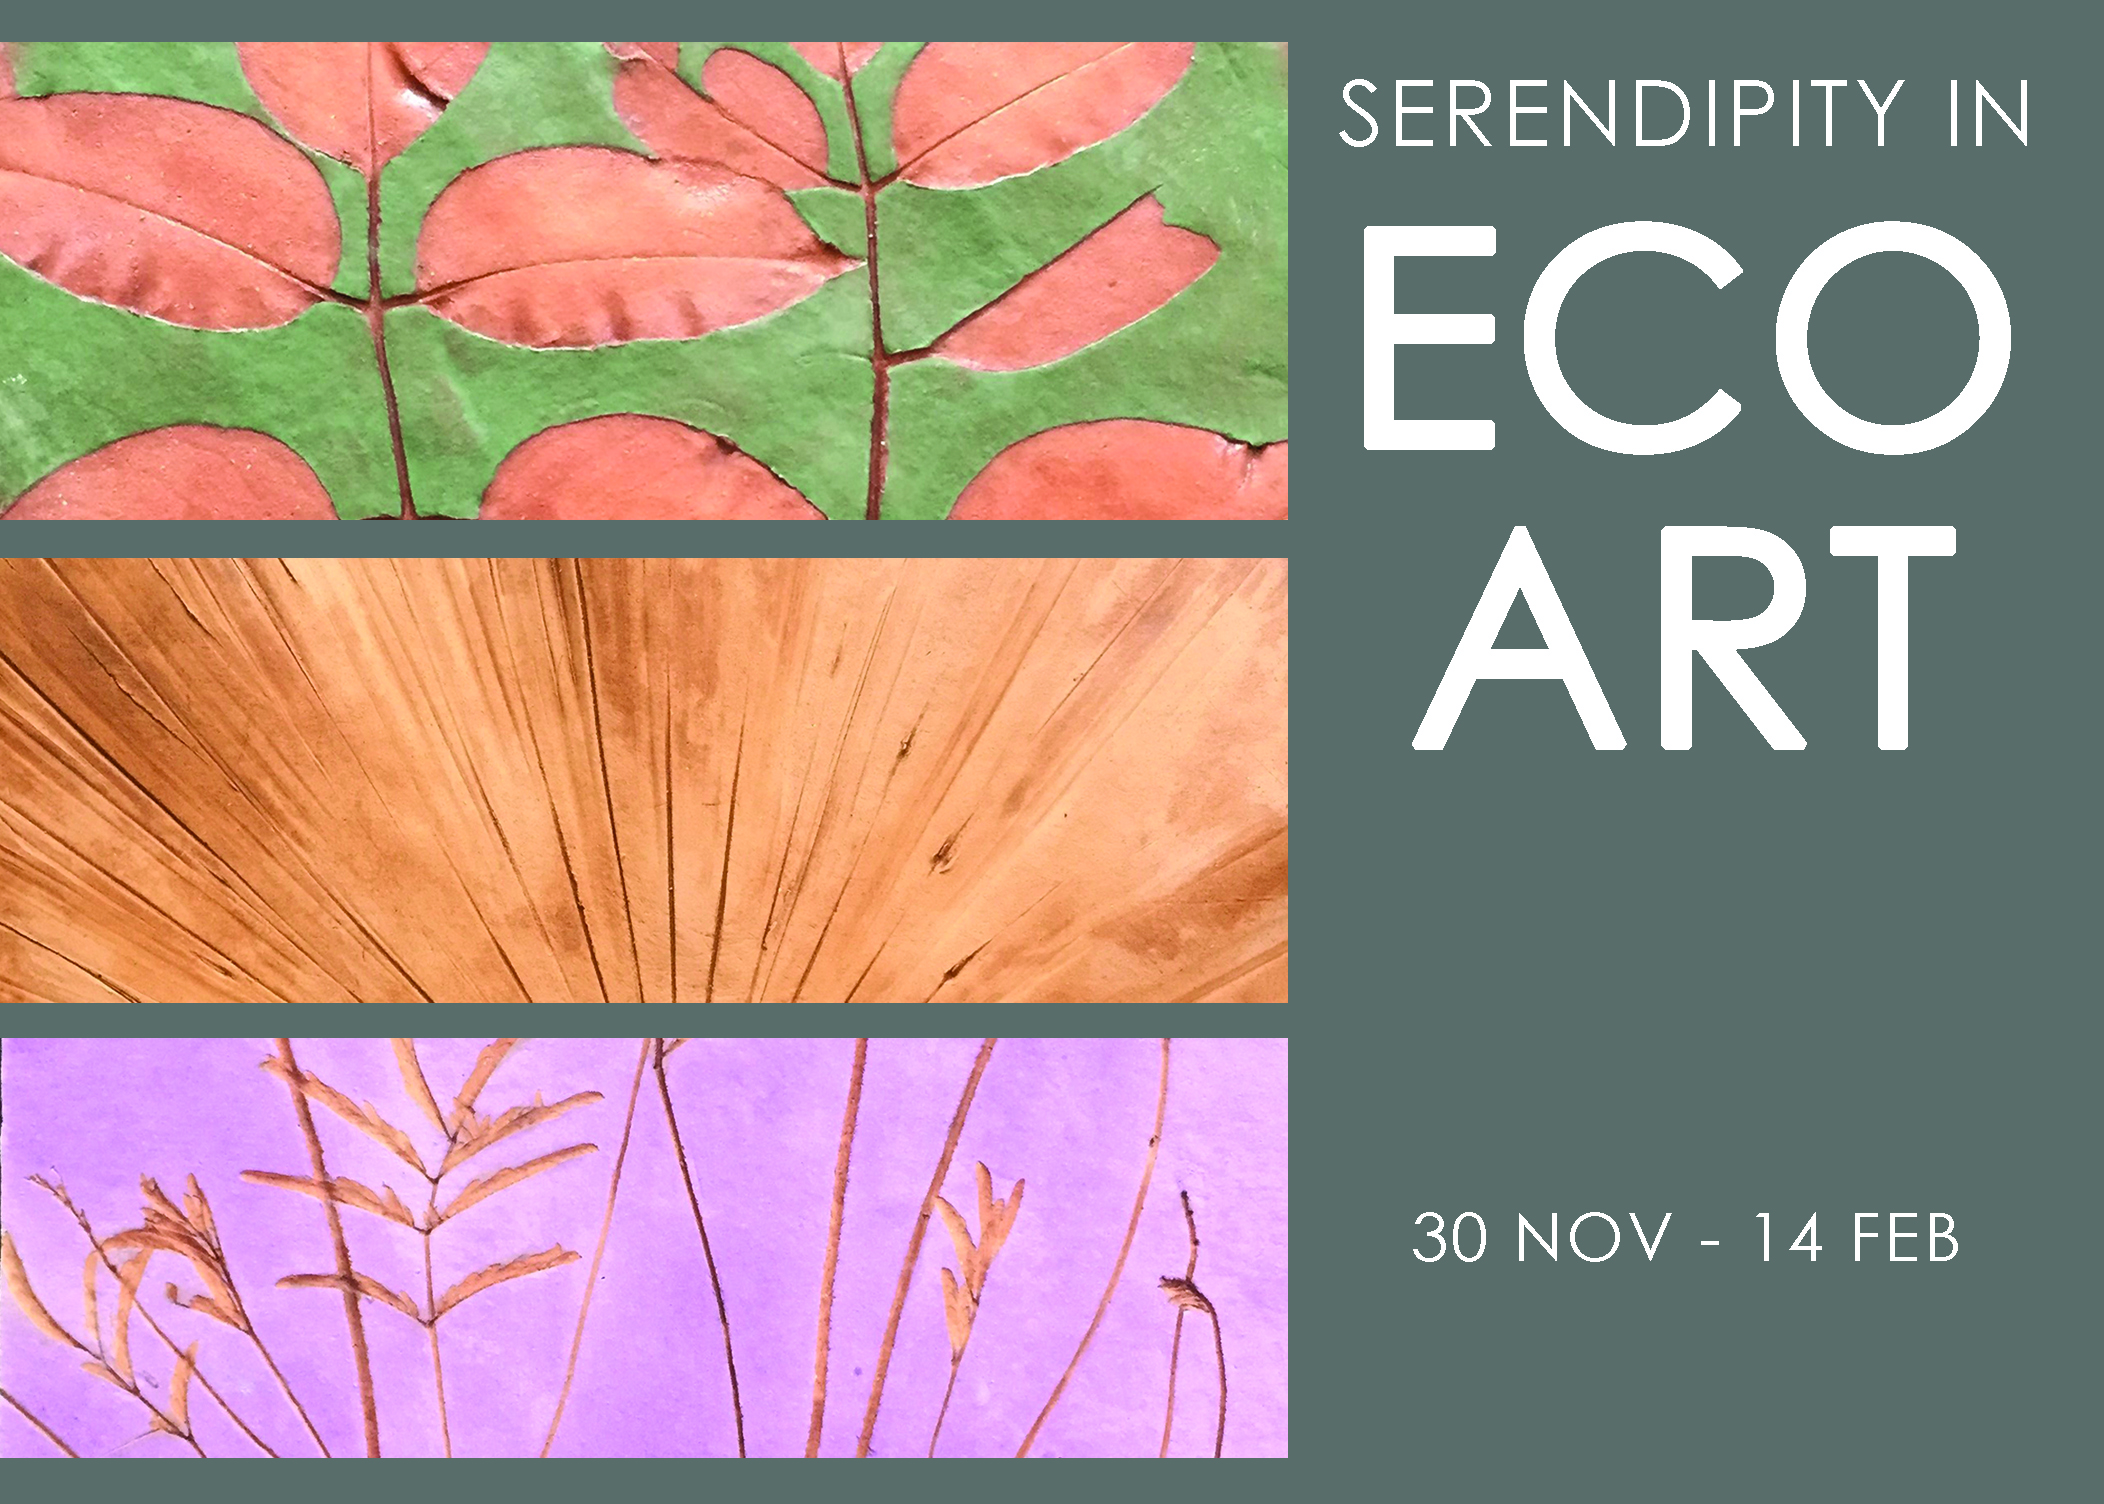 Serendipity in EcoArt